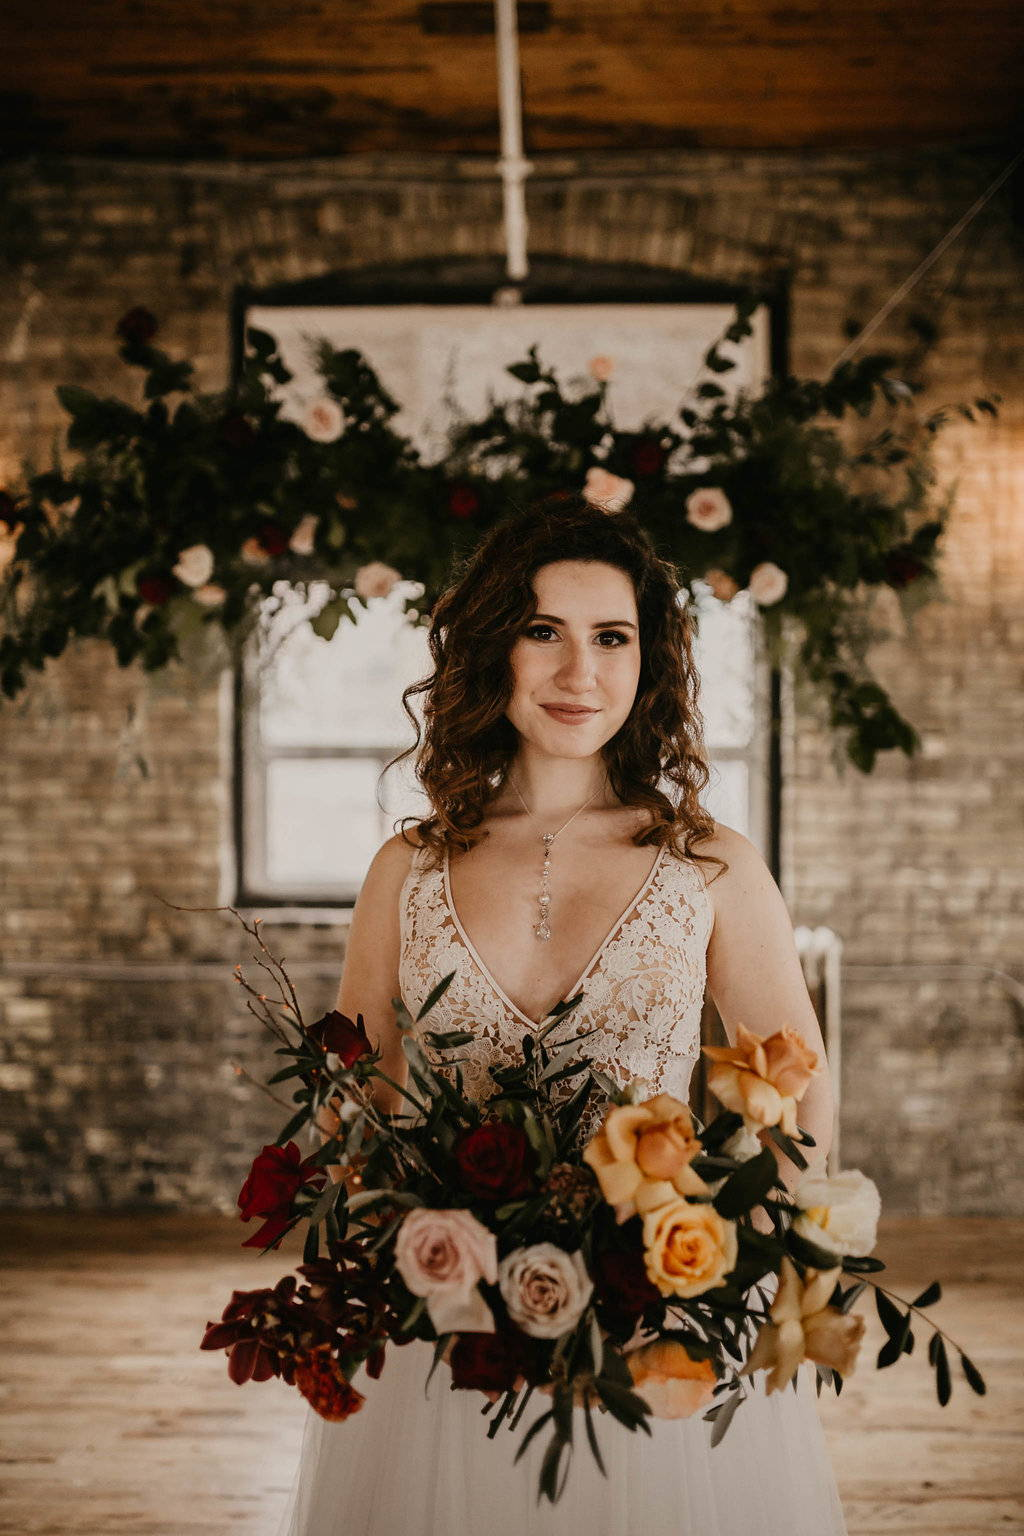 Bride standing in front of a floral installation with her bridal bouquet at The Jam Factory in Toronto